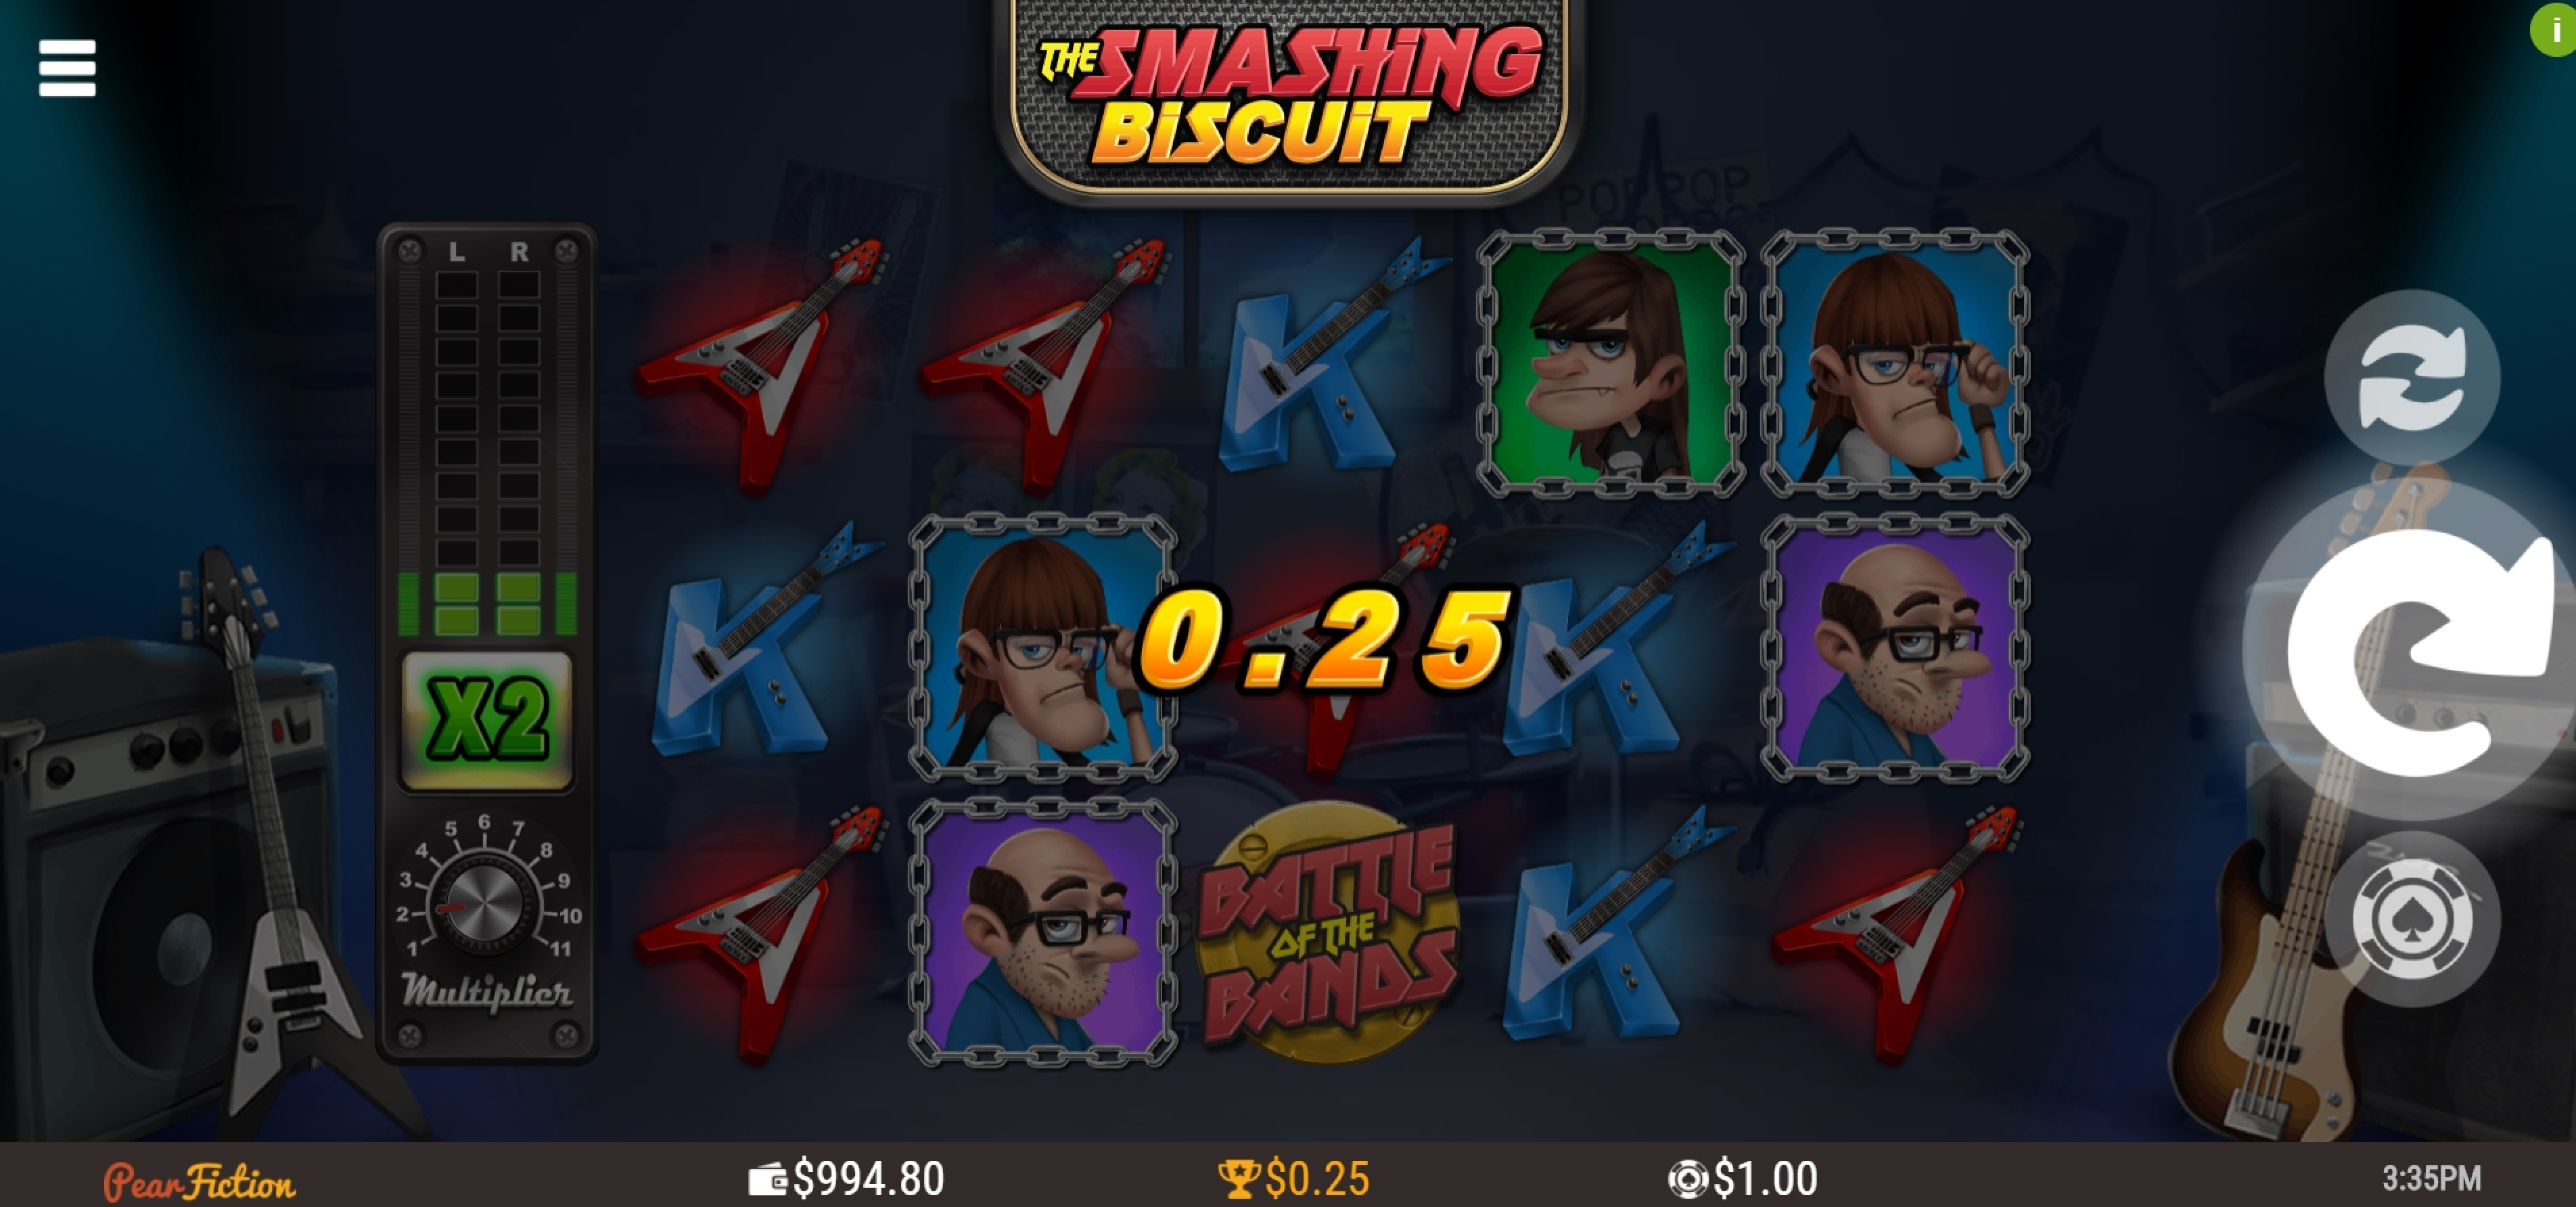 Win Money in The Smashing Biscuit Free Slot Game by PearFiction Studios